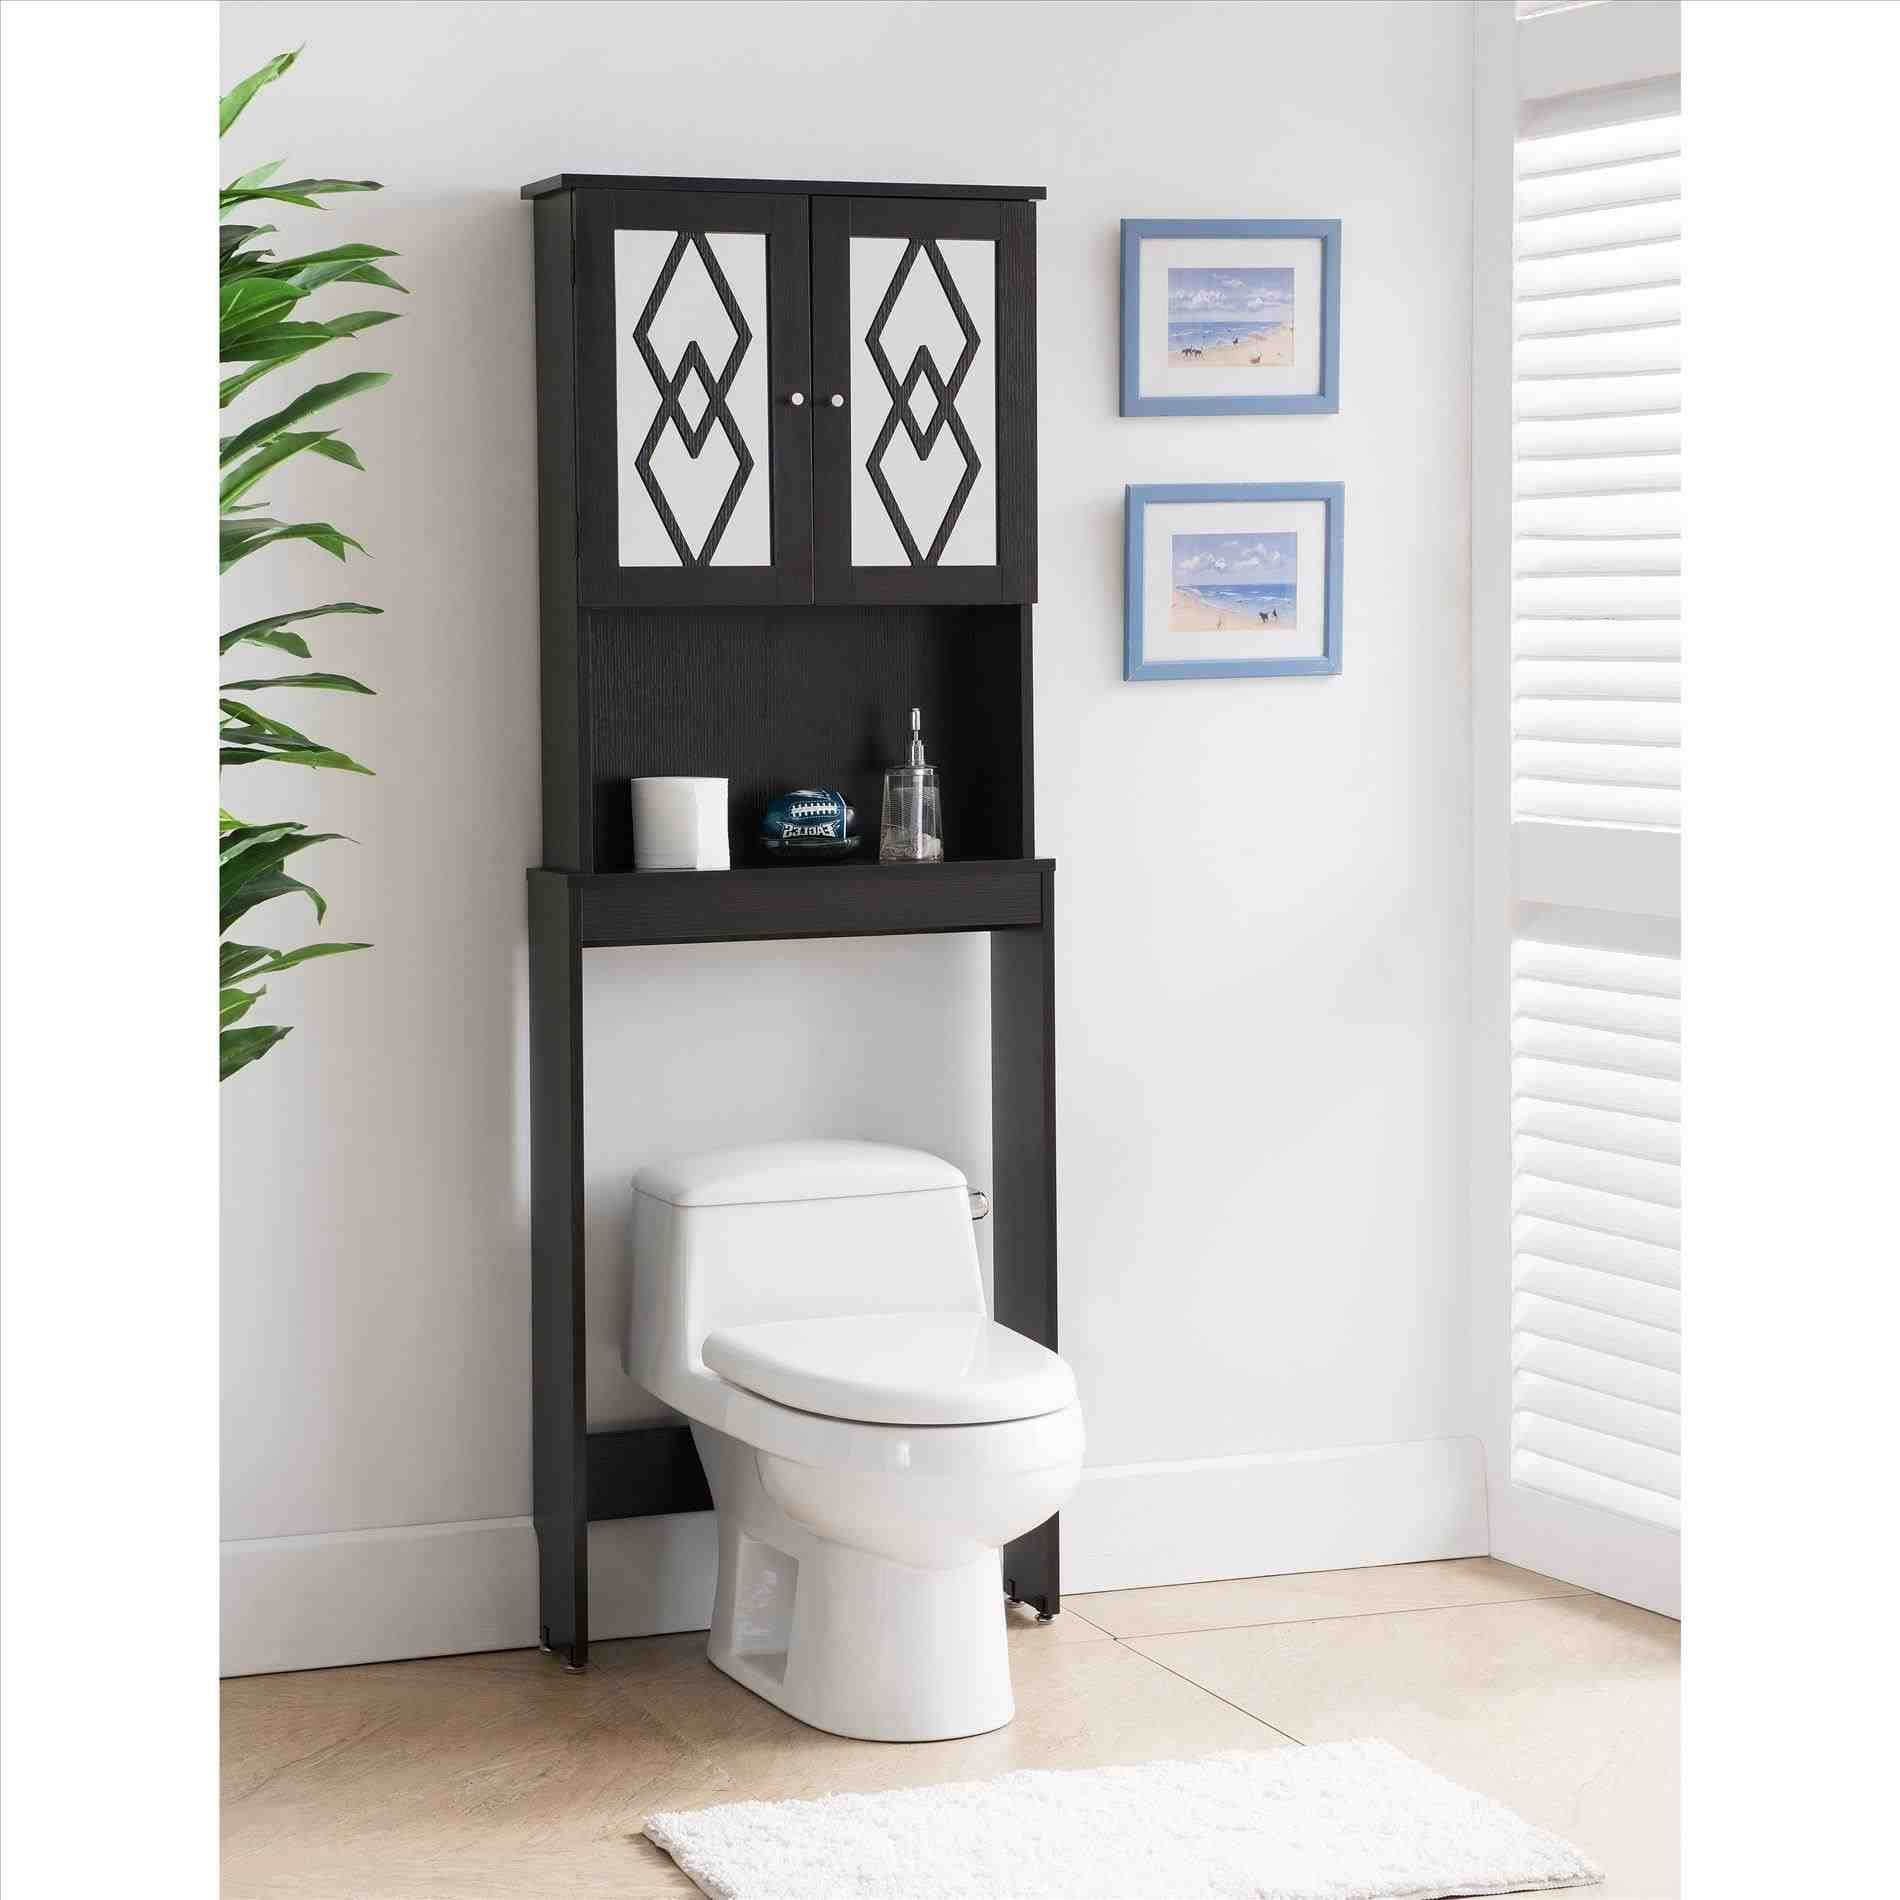 This Bathroom Etagere Ikea   97 Lighting For Small Bathrooms Wkz Bathroom .  Bathroom Remodeling Ideas For Small Spaces Wooden Vanity Cabinets Sink And  ...